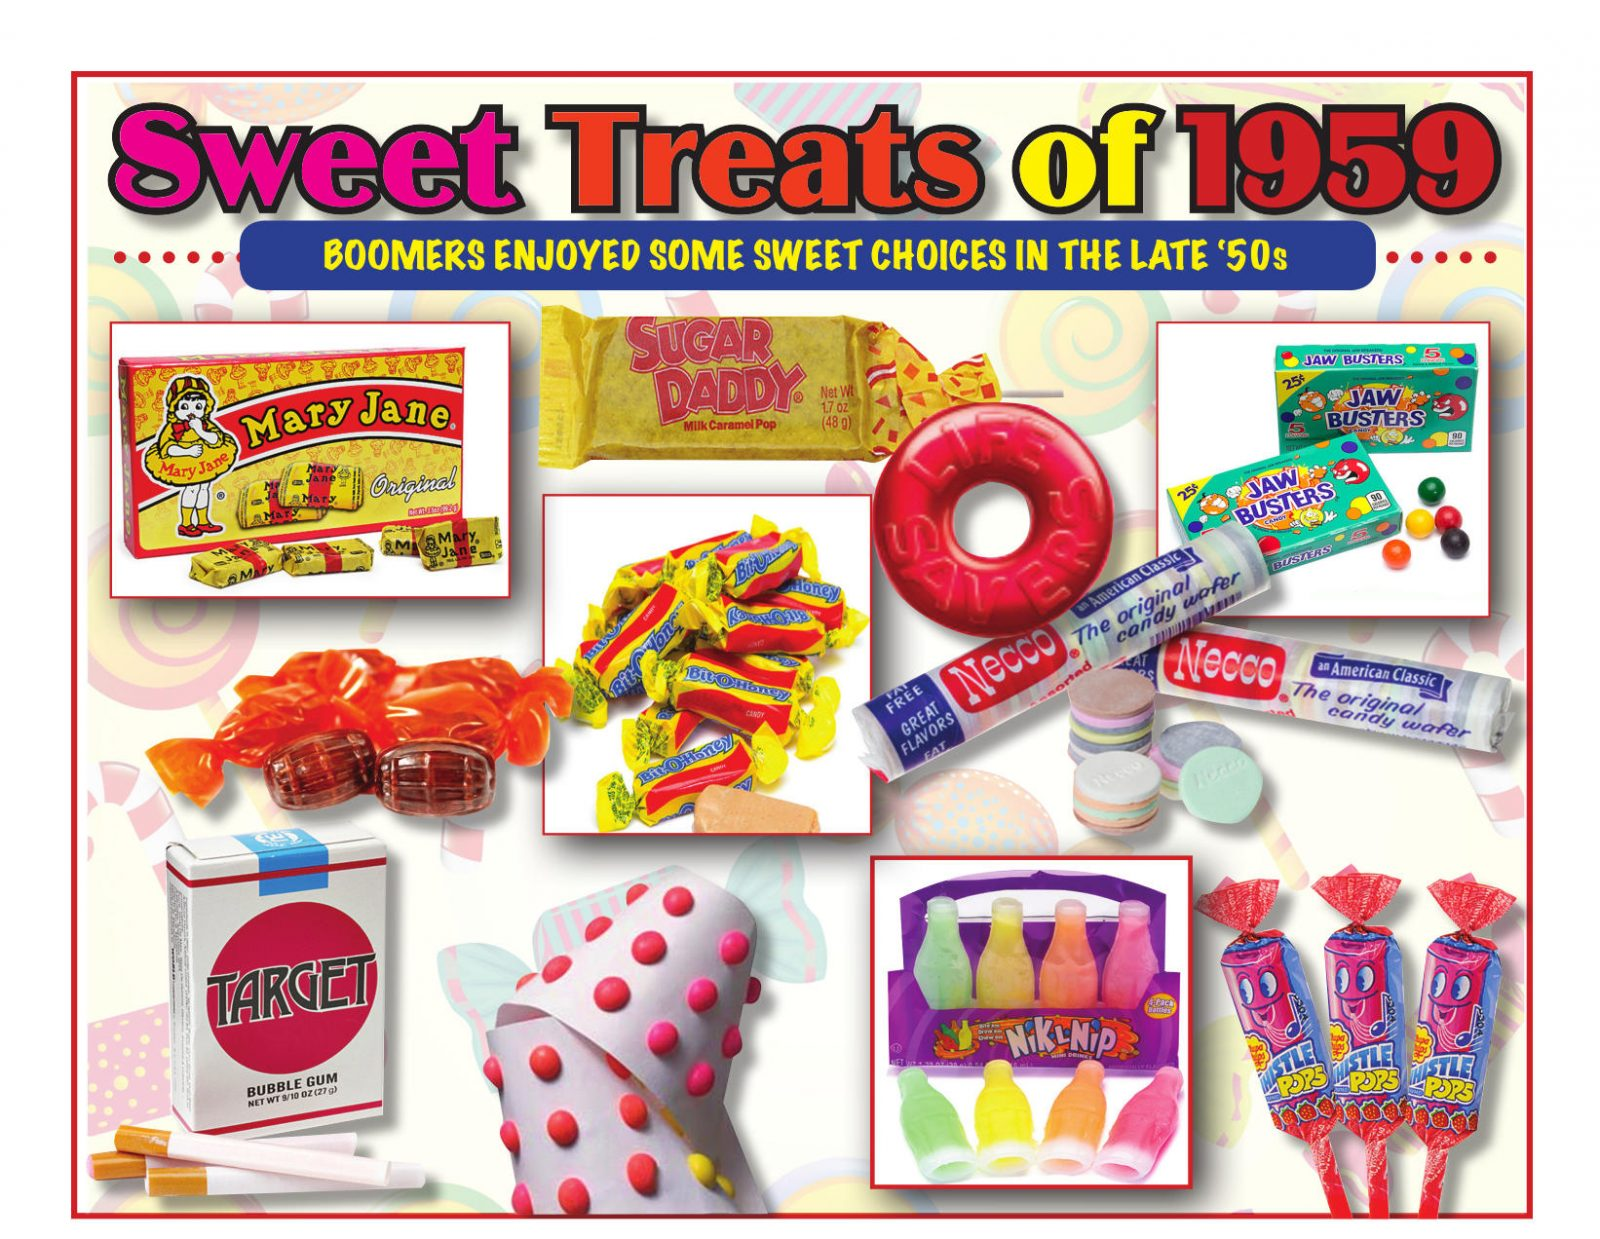 07-July-2019 Boomerz of America Sweet Treats of 1959